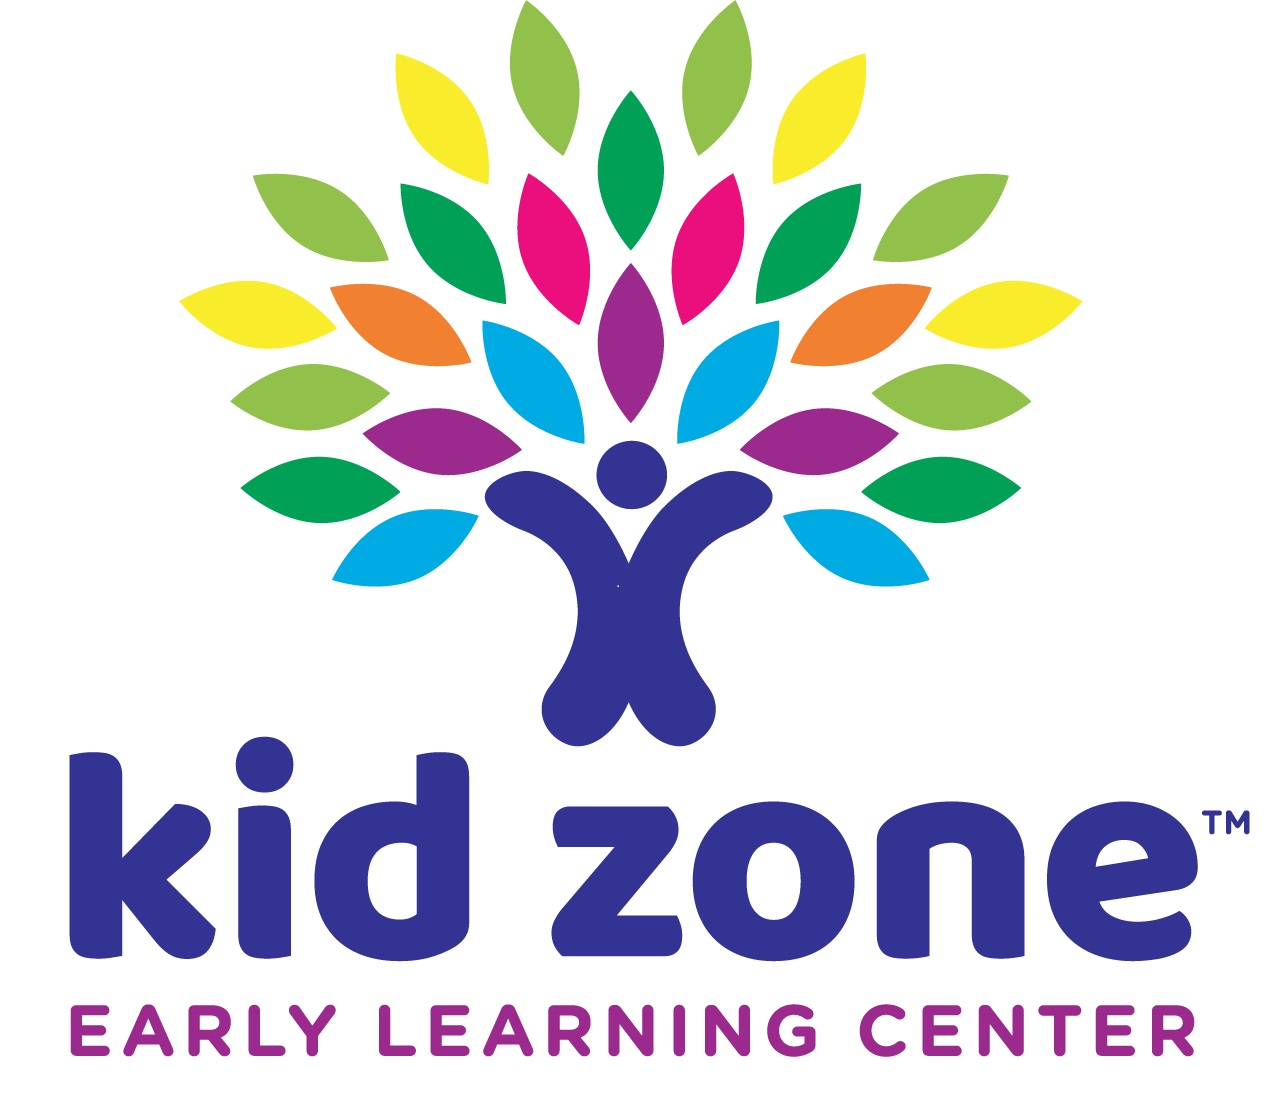 Kid Zone Early Learning Center